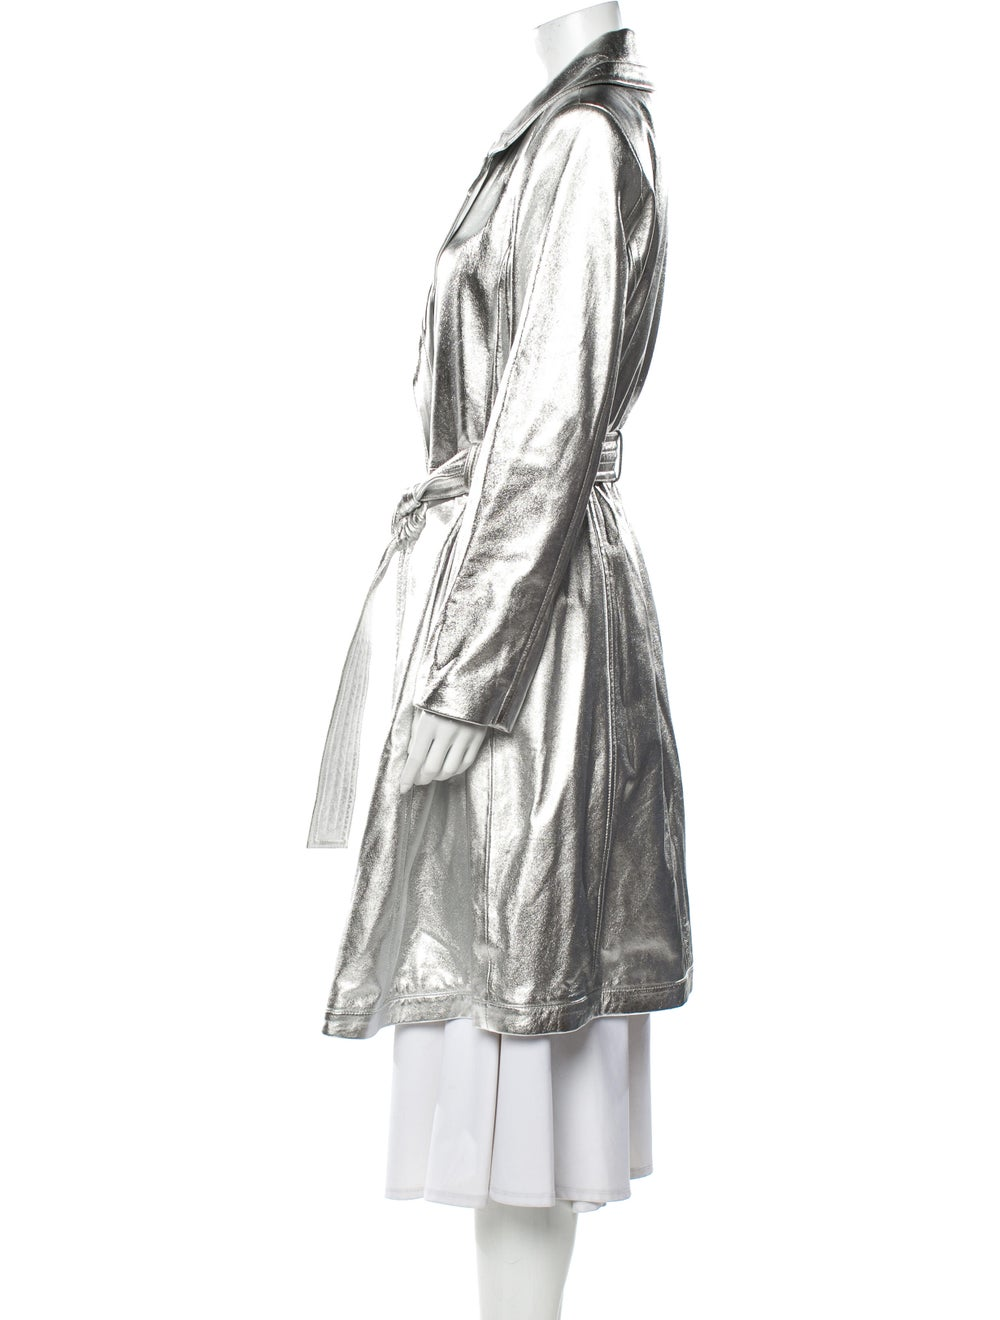 A.l.c. Lamb Leather Trench Coat Silver - image 2